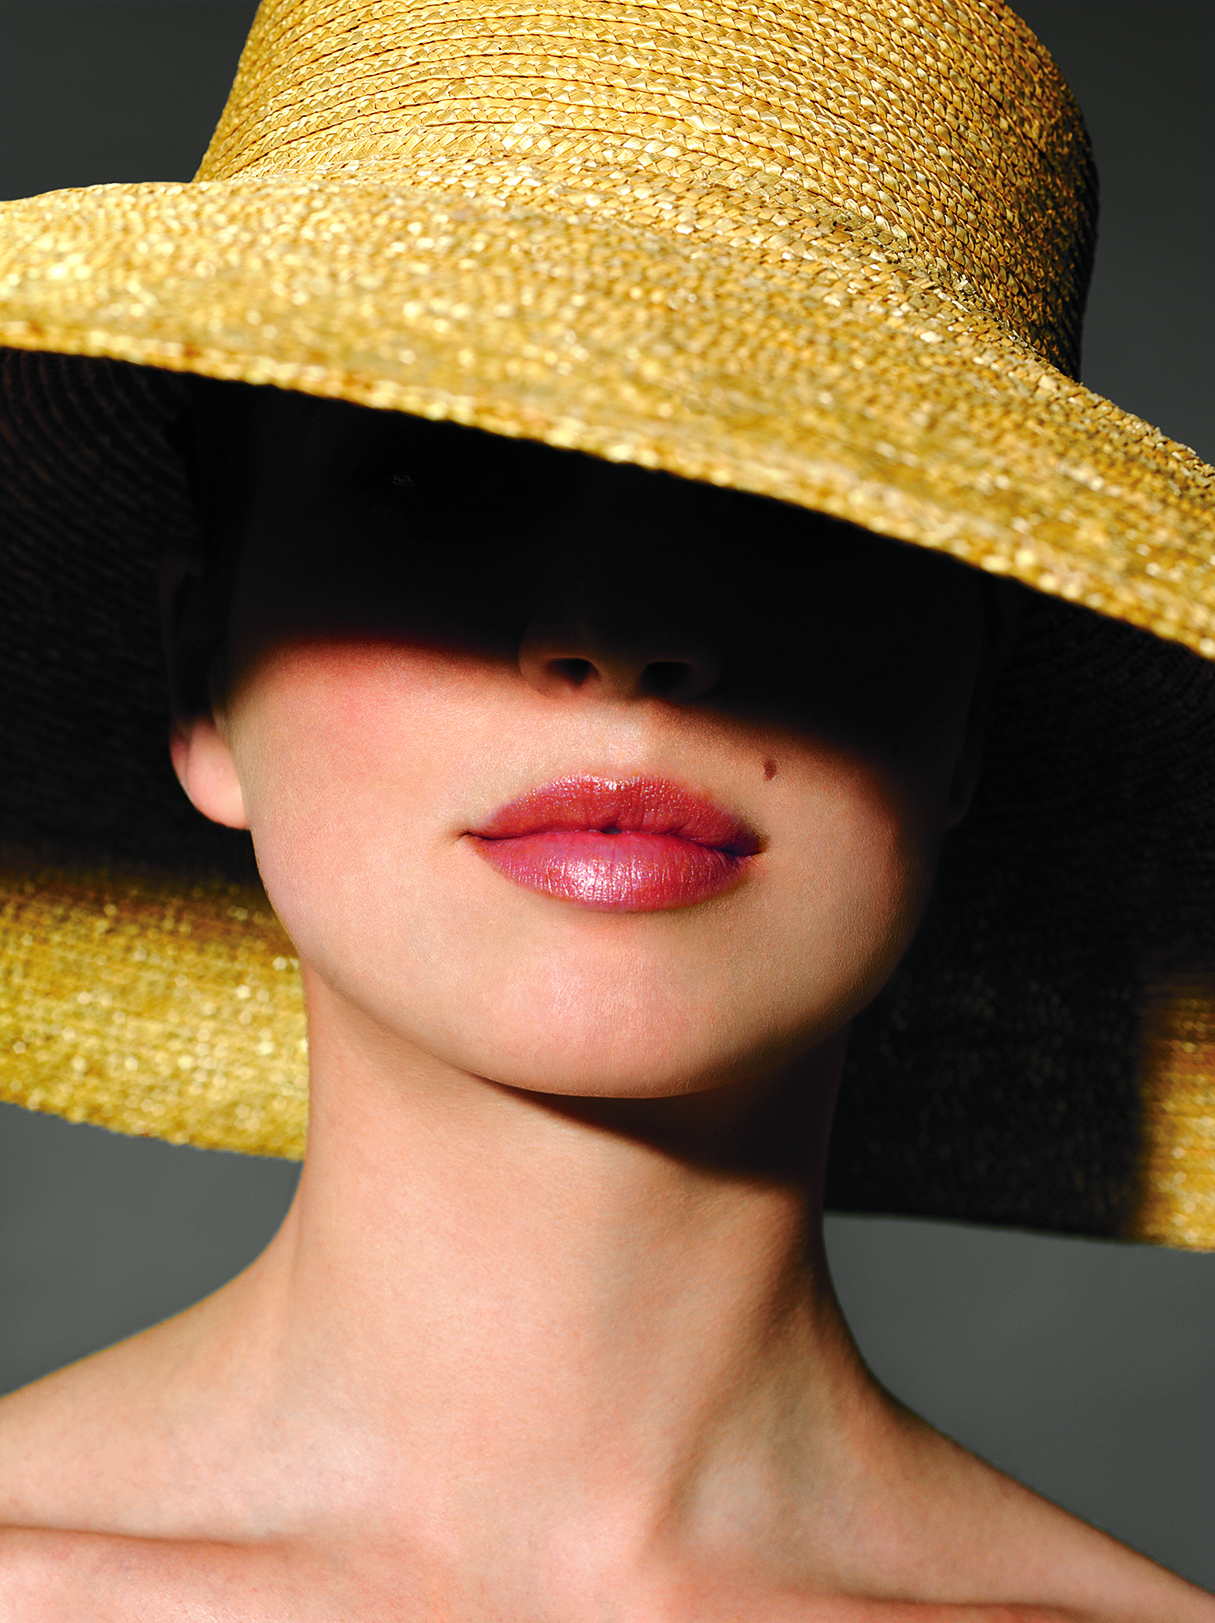 Woman with large straw hat covering her face